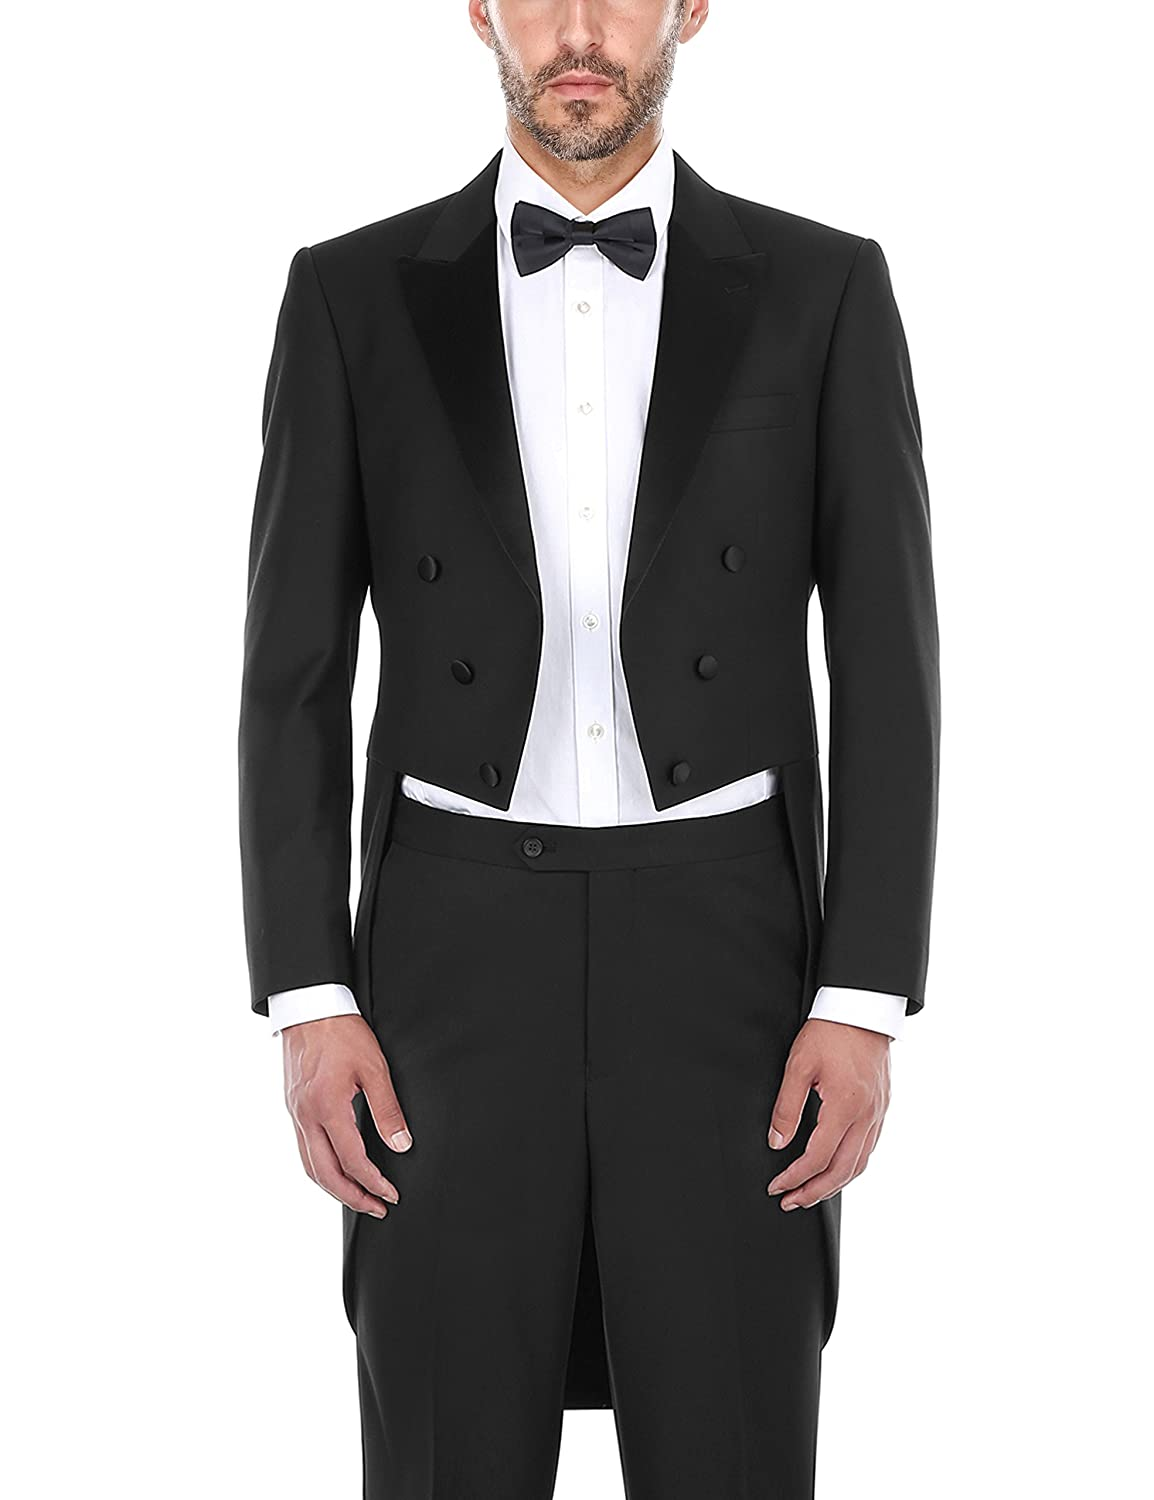 new arrive hot-selling clearance cute cheap Chama 2 Piece Men's Classic Fit Black Tuxedo Tailcoat Tail Coat Suit, Suit  Tuxedo Jacket Blazer, Suit Tuxedo Pants